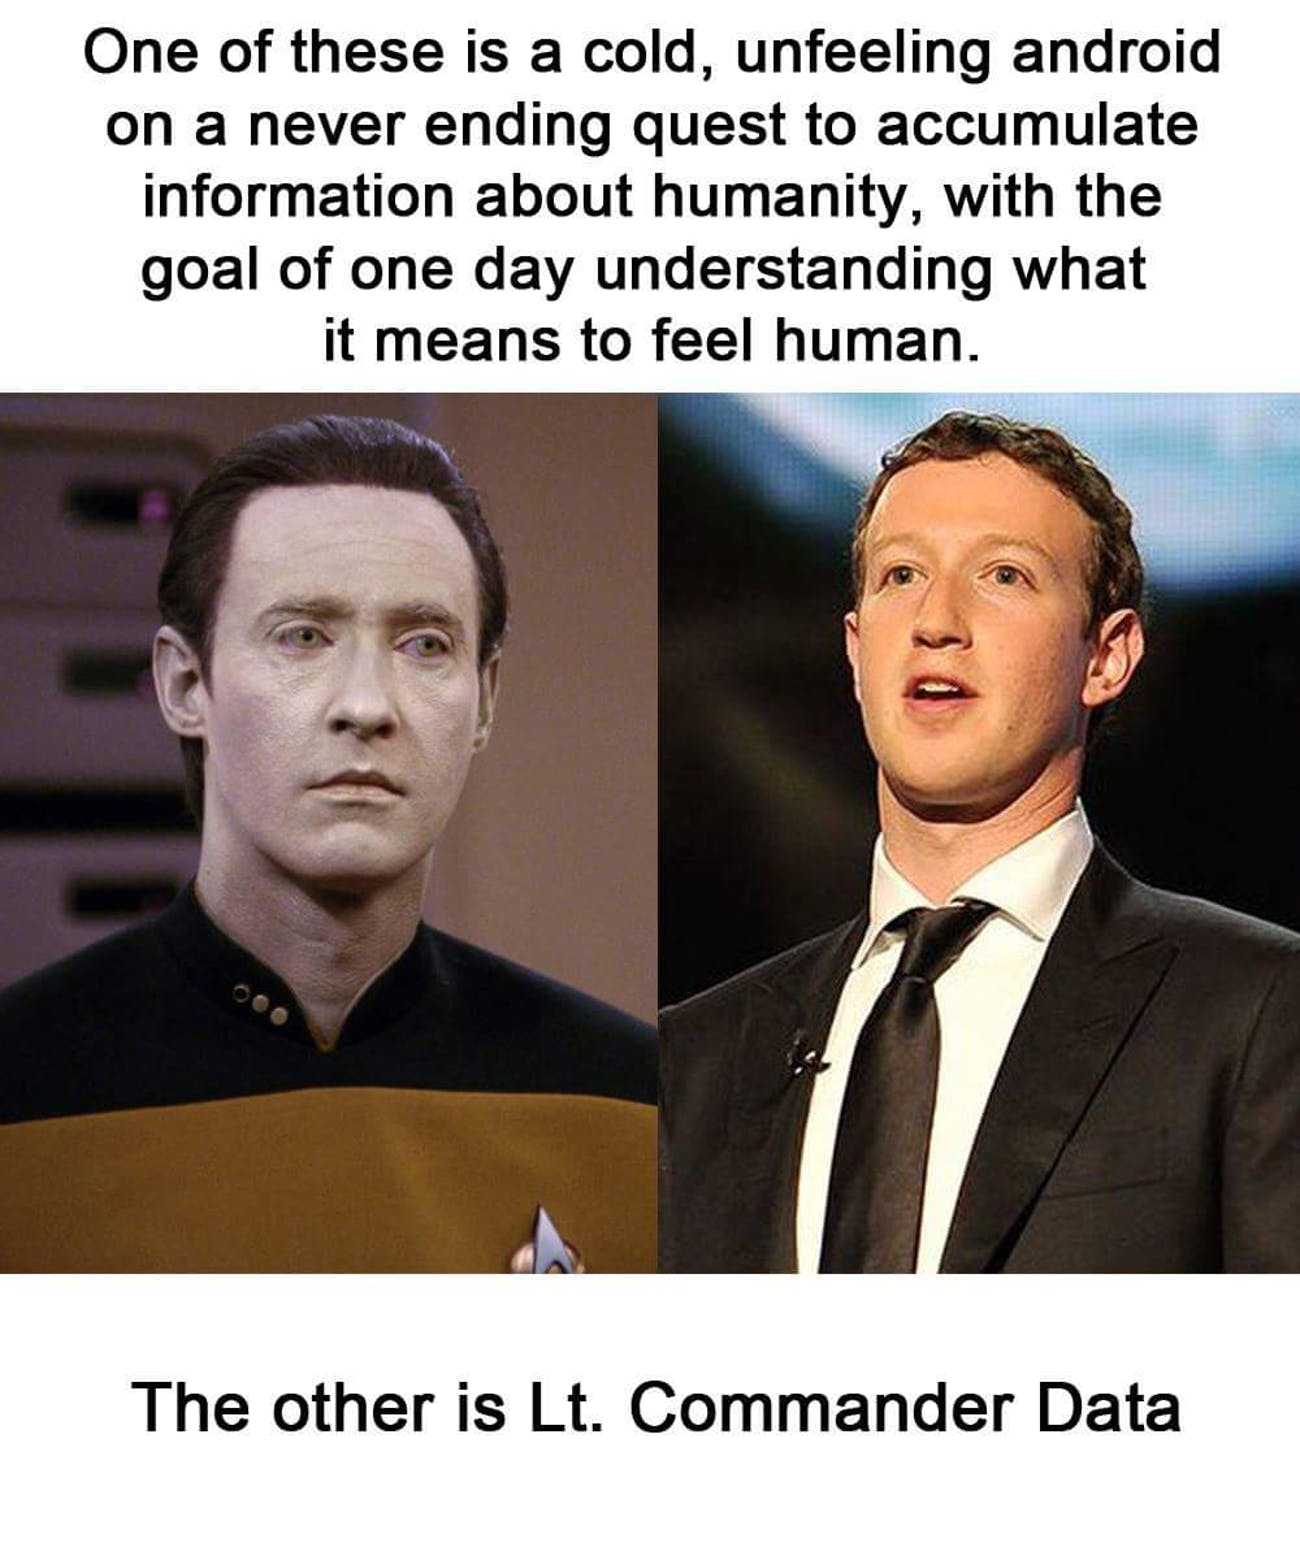 Zuckerberg Testimony Spawns Meme Comparing Him To Star Treks Data